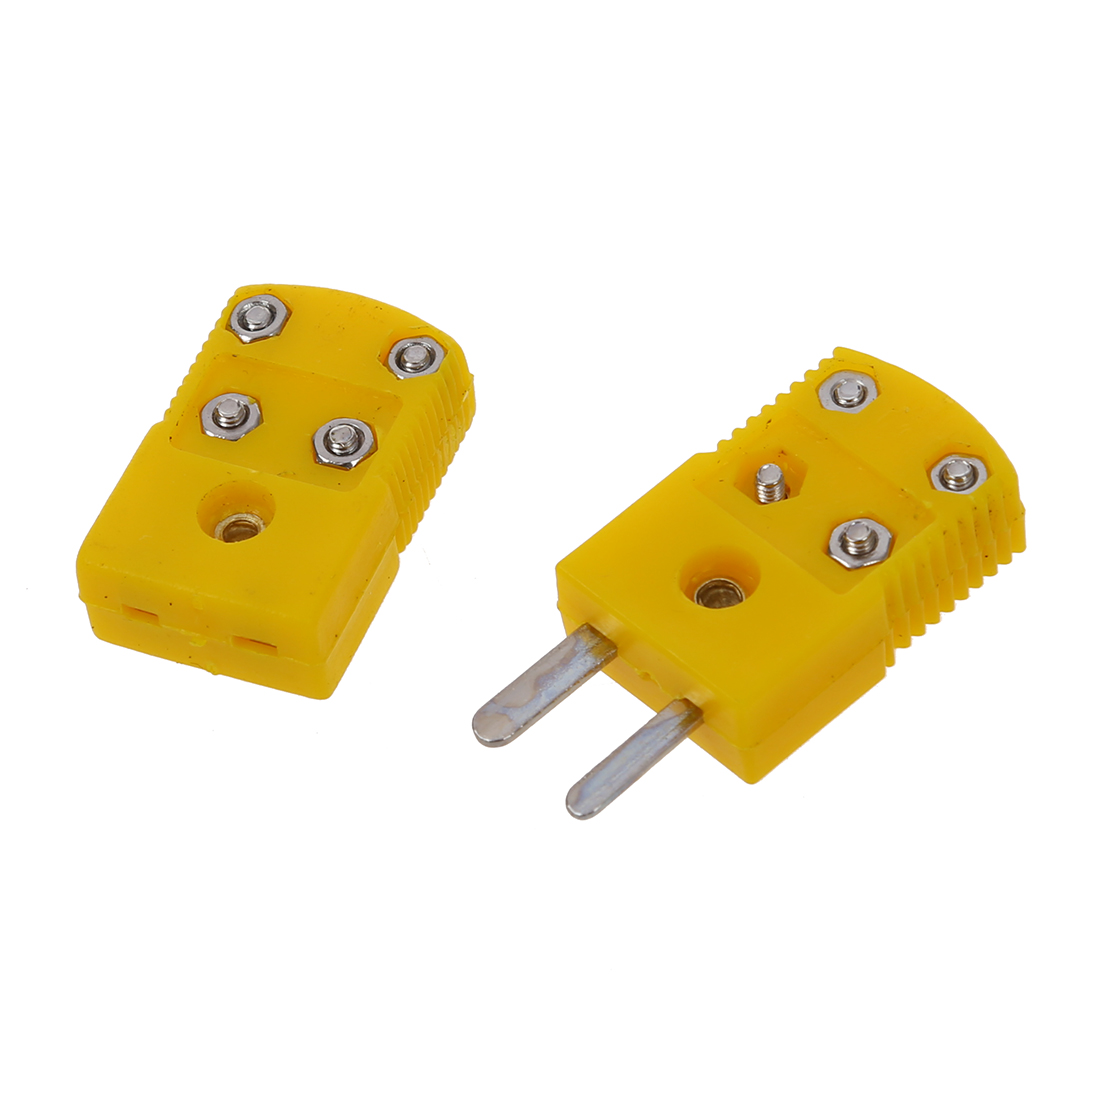 Accessories & Parts Ffyy-yellow Plastic Shell K Type Thermocouple Plug Socket Connector Set Non-Ironing